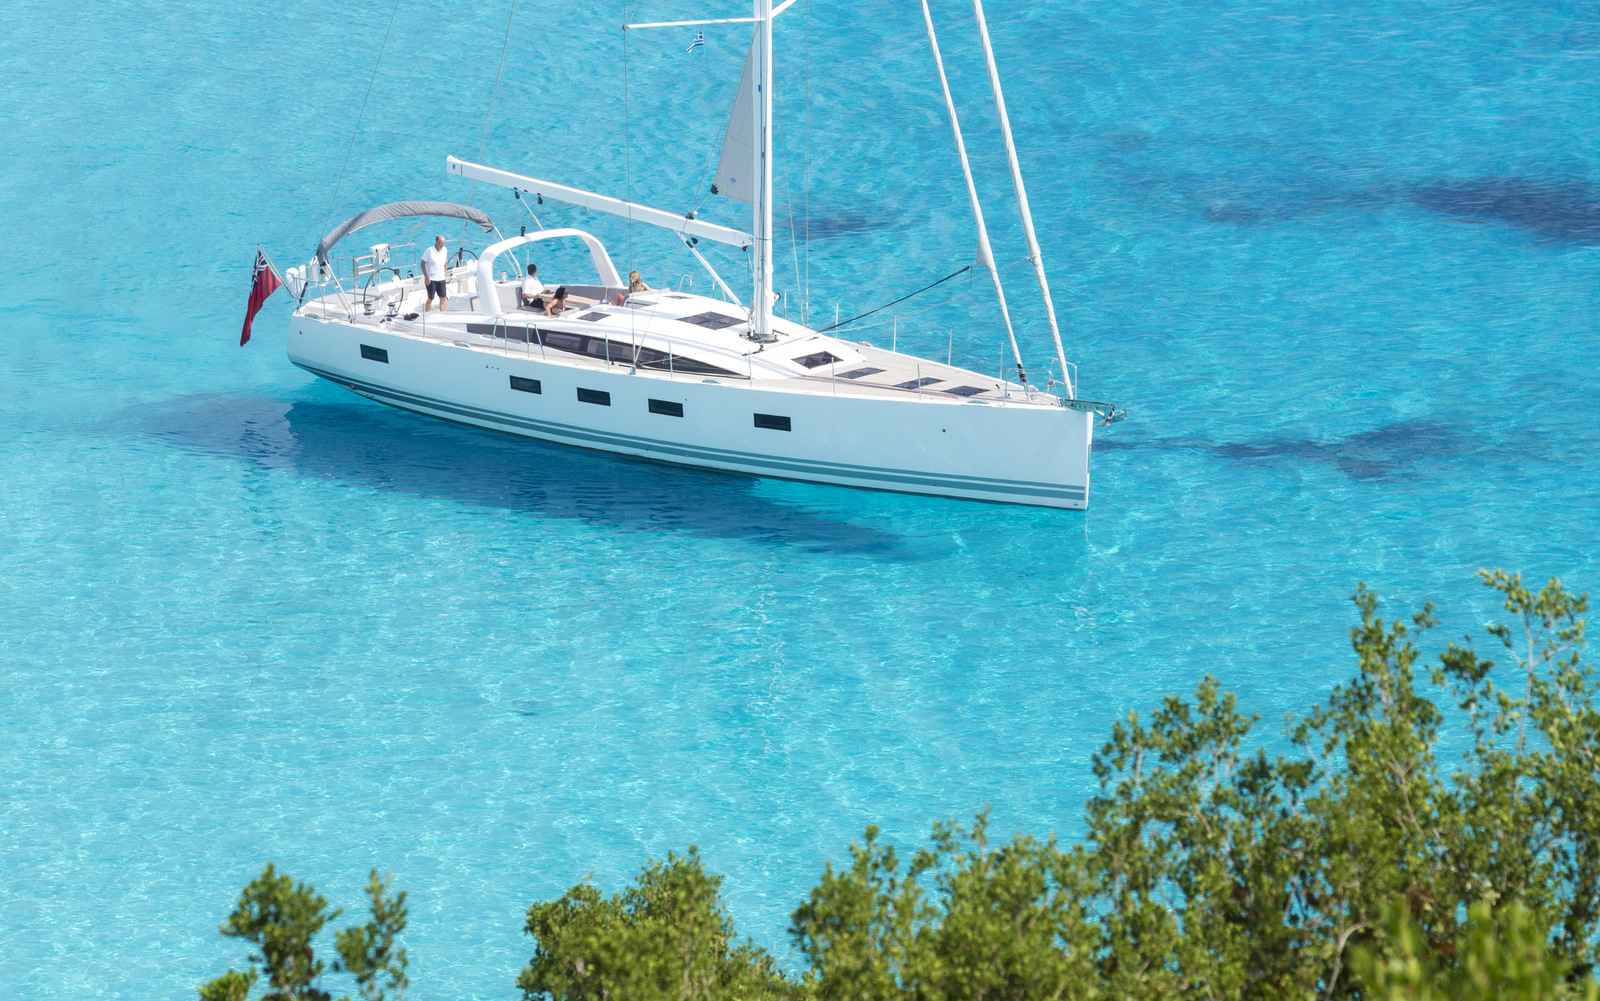 These luxury sailing yachts are the best way to see the world on water